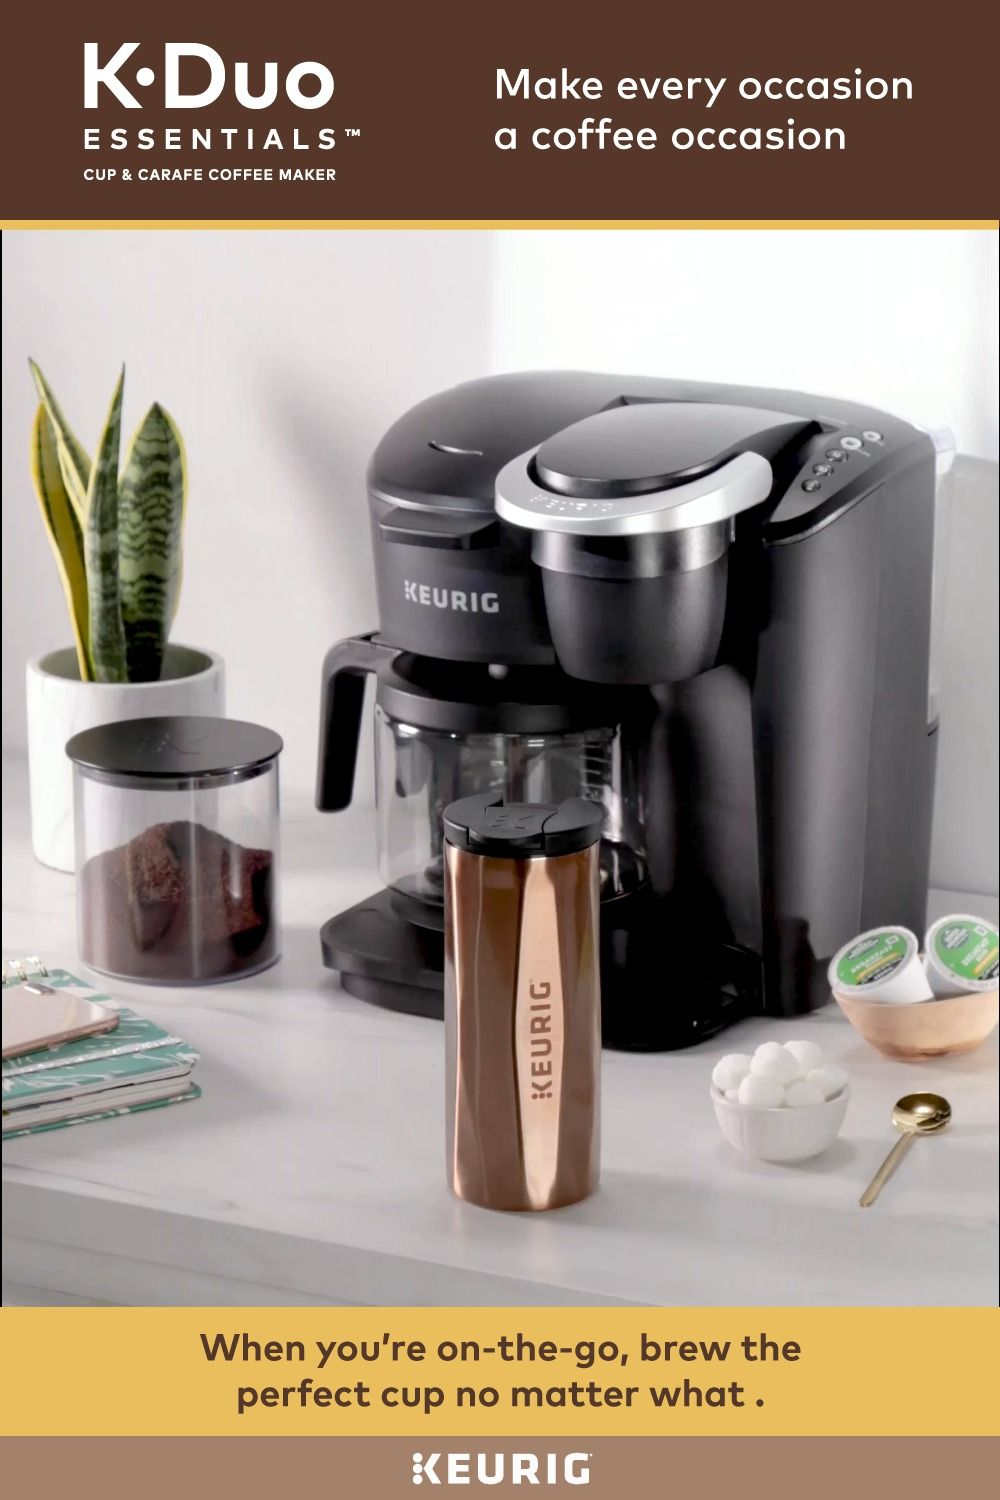 The new Keurig KDuo Essentials brewer can brew a carafe